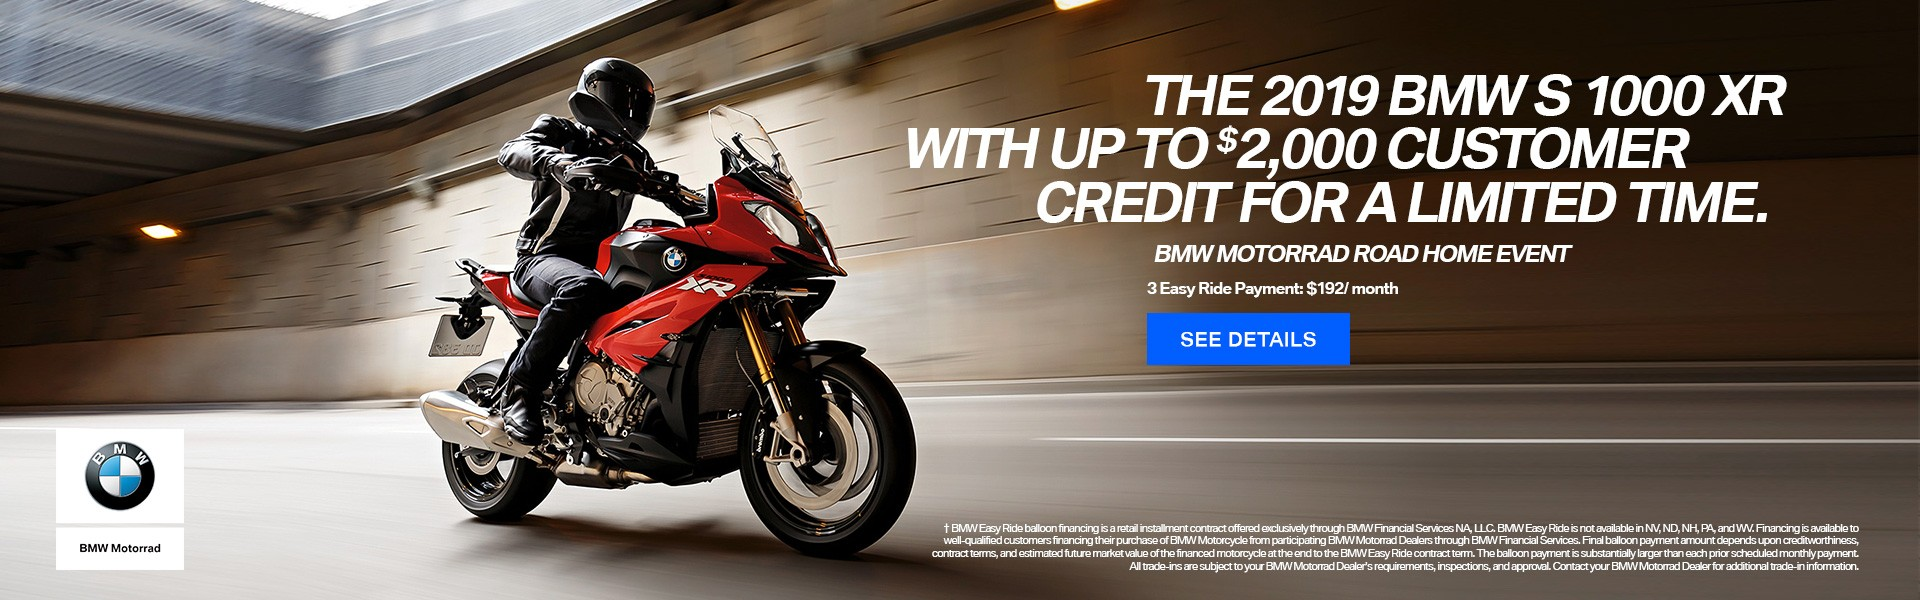 The 2019 BMW S 1000 XR with up to $2000 Customer Credit for a limited time.